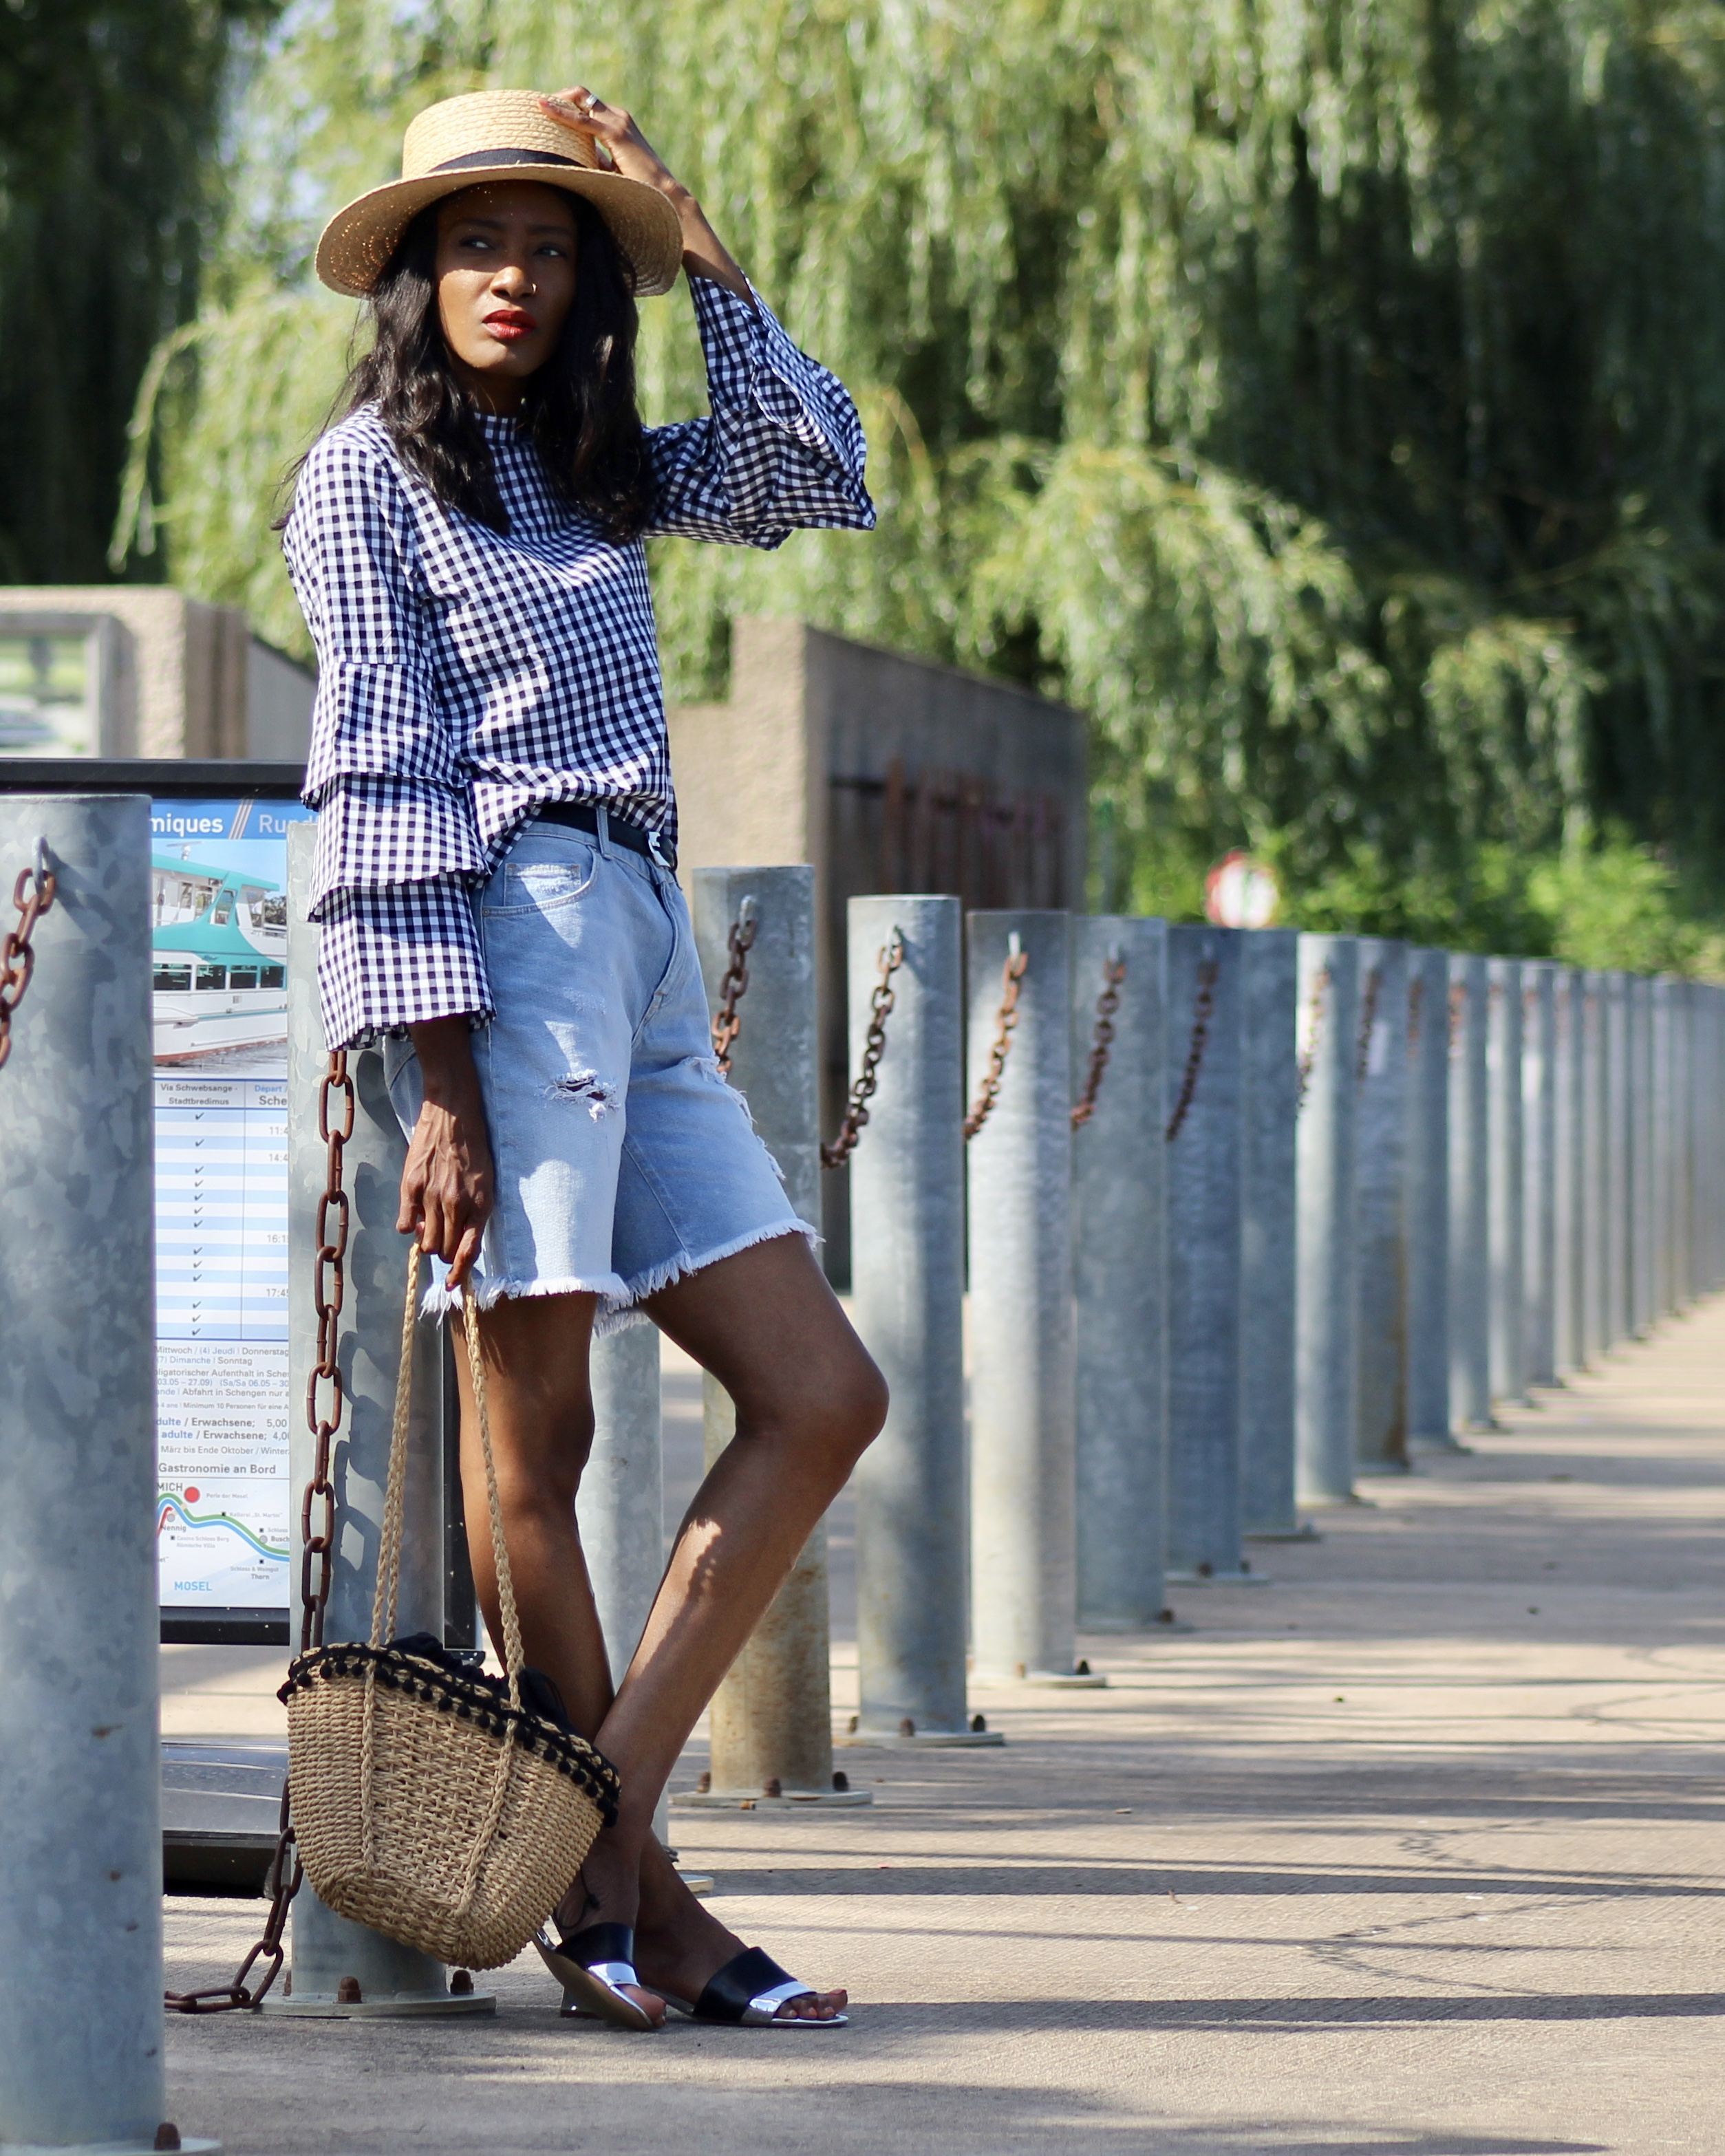 gingham top denim shorts straw hat sandals